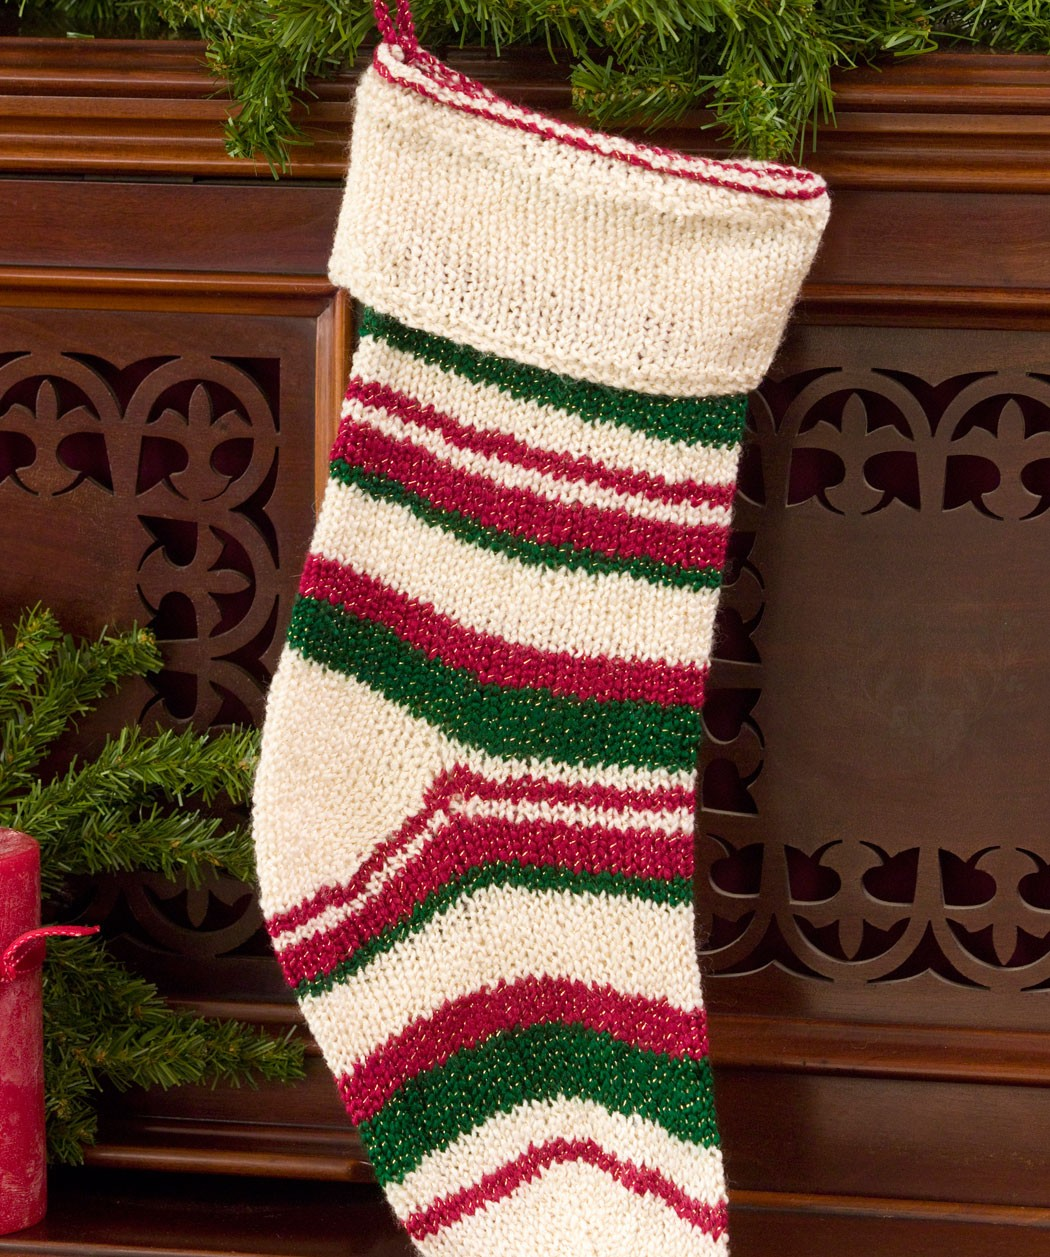 Knitting Pattern For Christmas Stocking Free : The gallery for --> Cable Knit Christmas Stockings